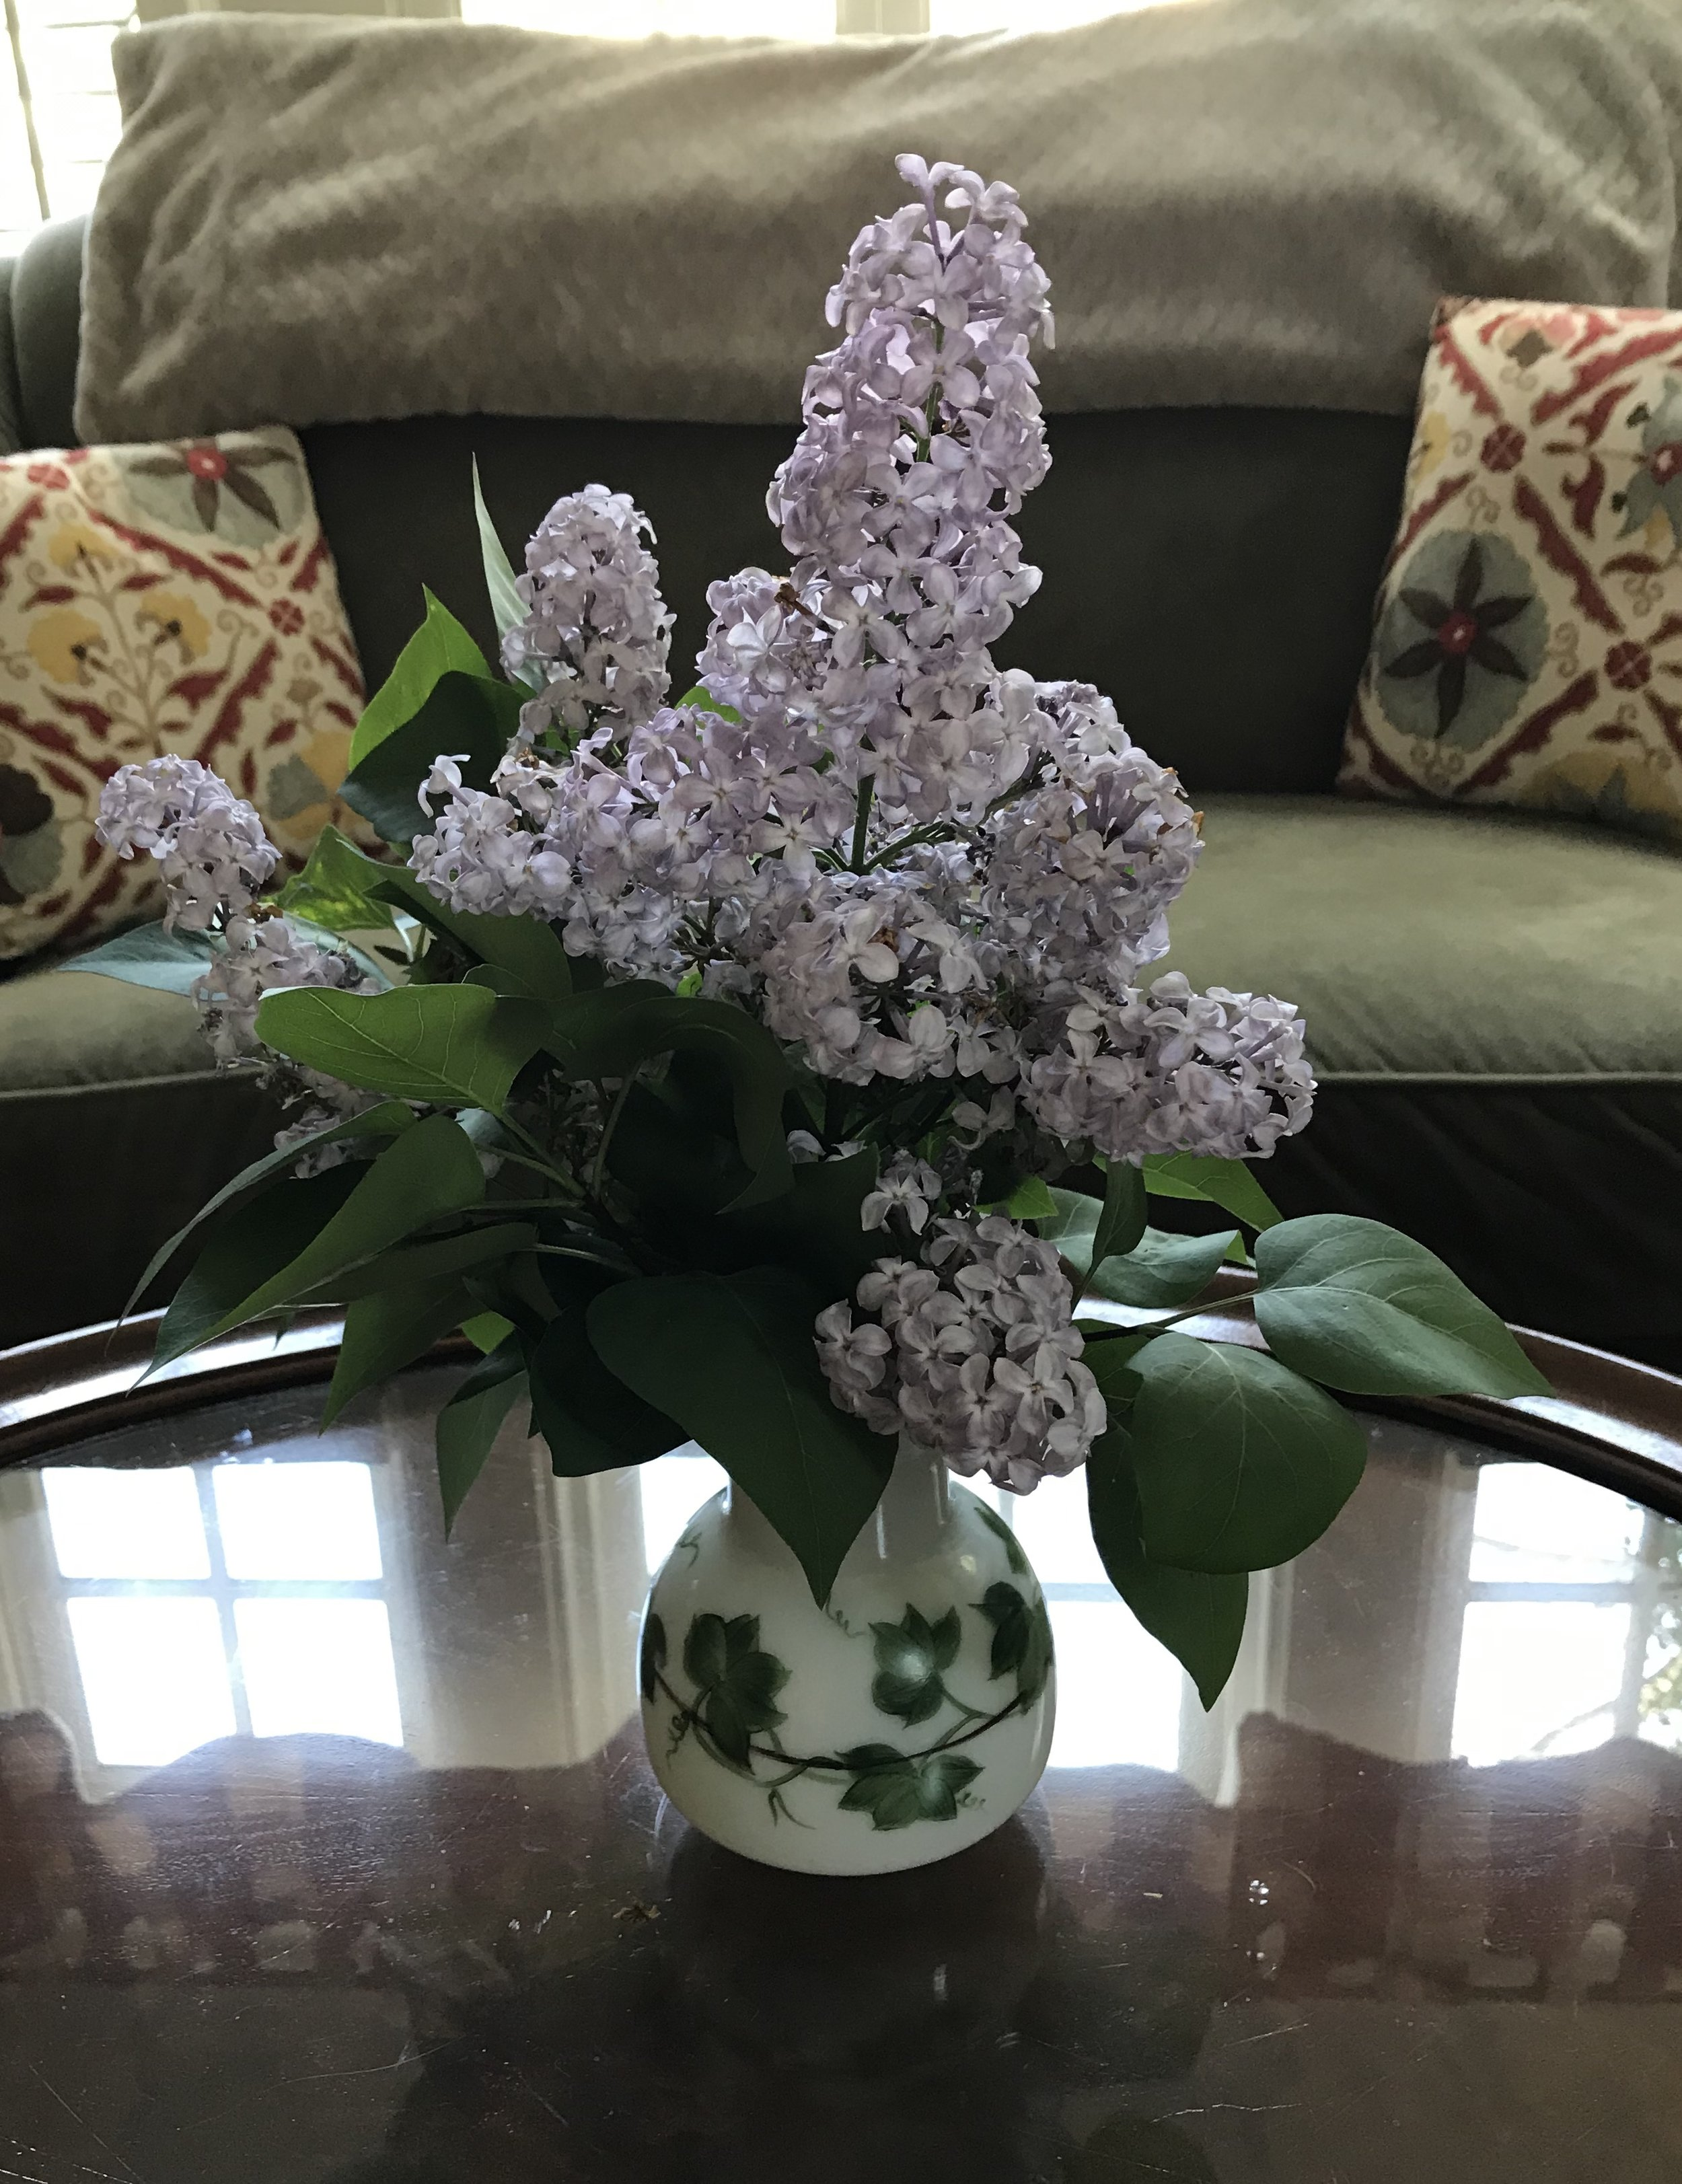 Here is a bouquet of lilacs from the ten-year old bush, fashioned in my mother's old white vase.